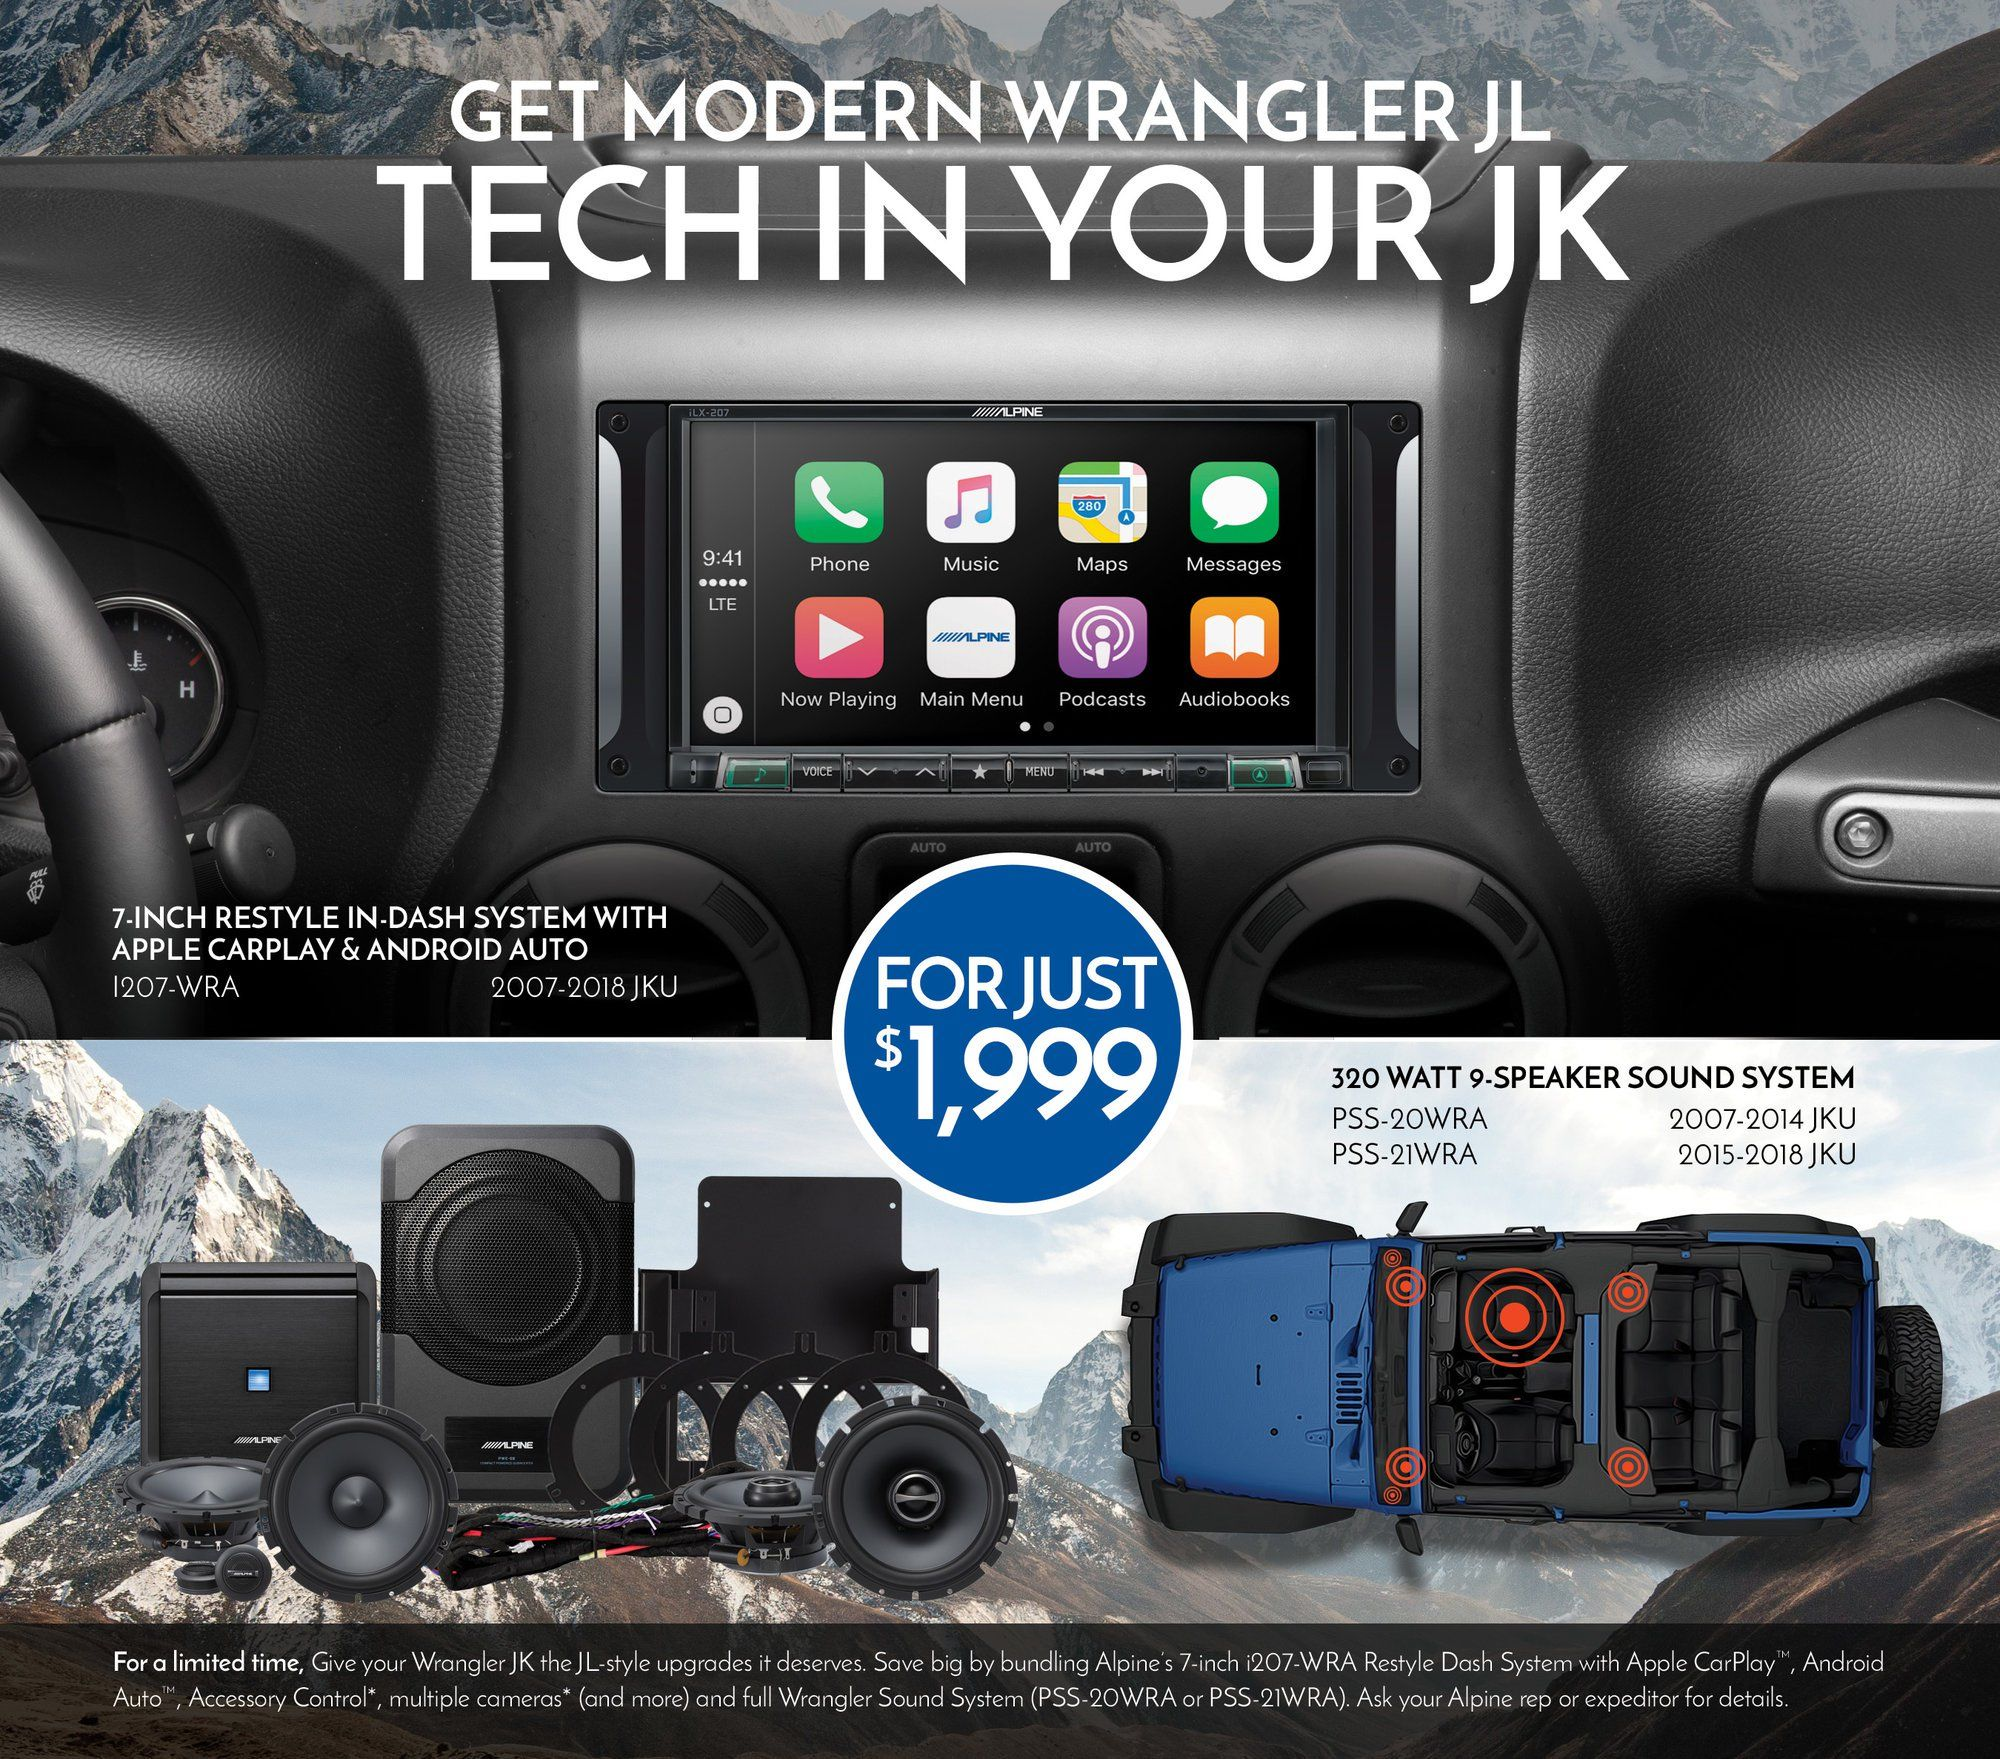 Alpine Has Combined The Alpine I207 Wra With The Power Of Their Full Sound System Upgrade So You Can Get Mod Sound System Jeep Wrangler Unlimited Jeep Wrangler